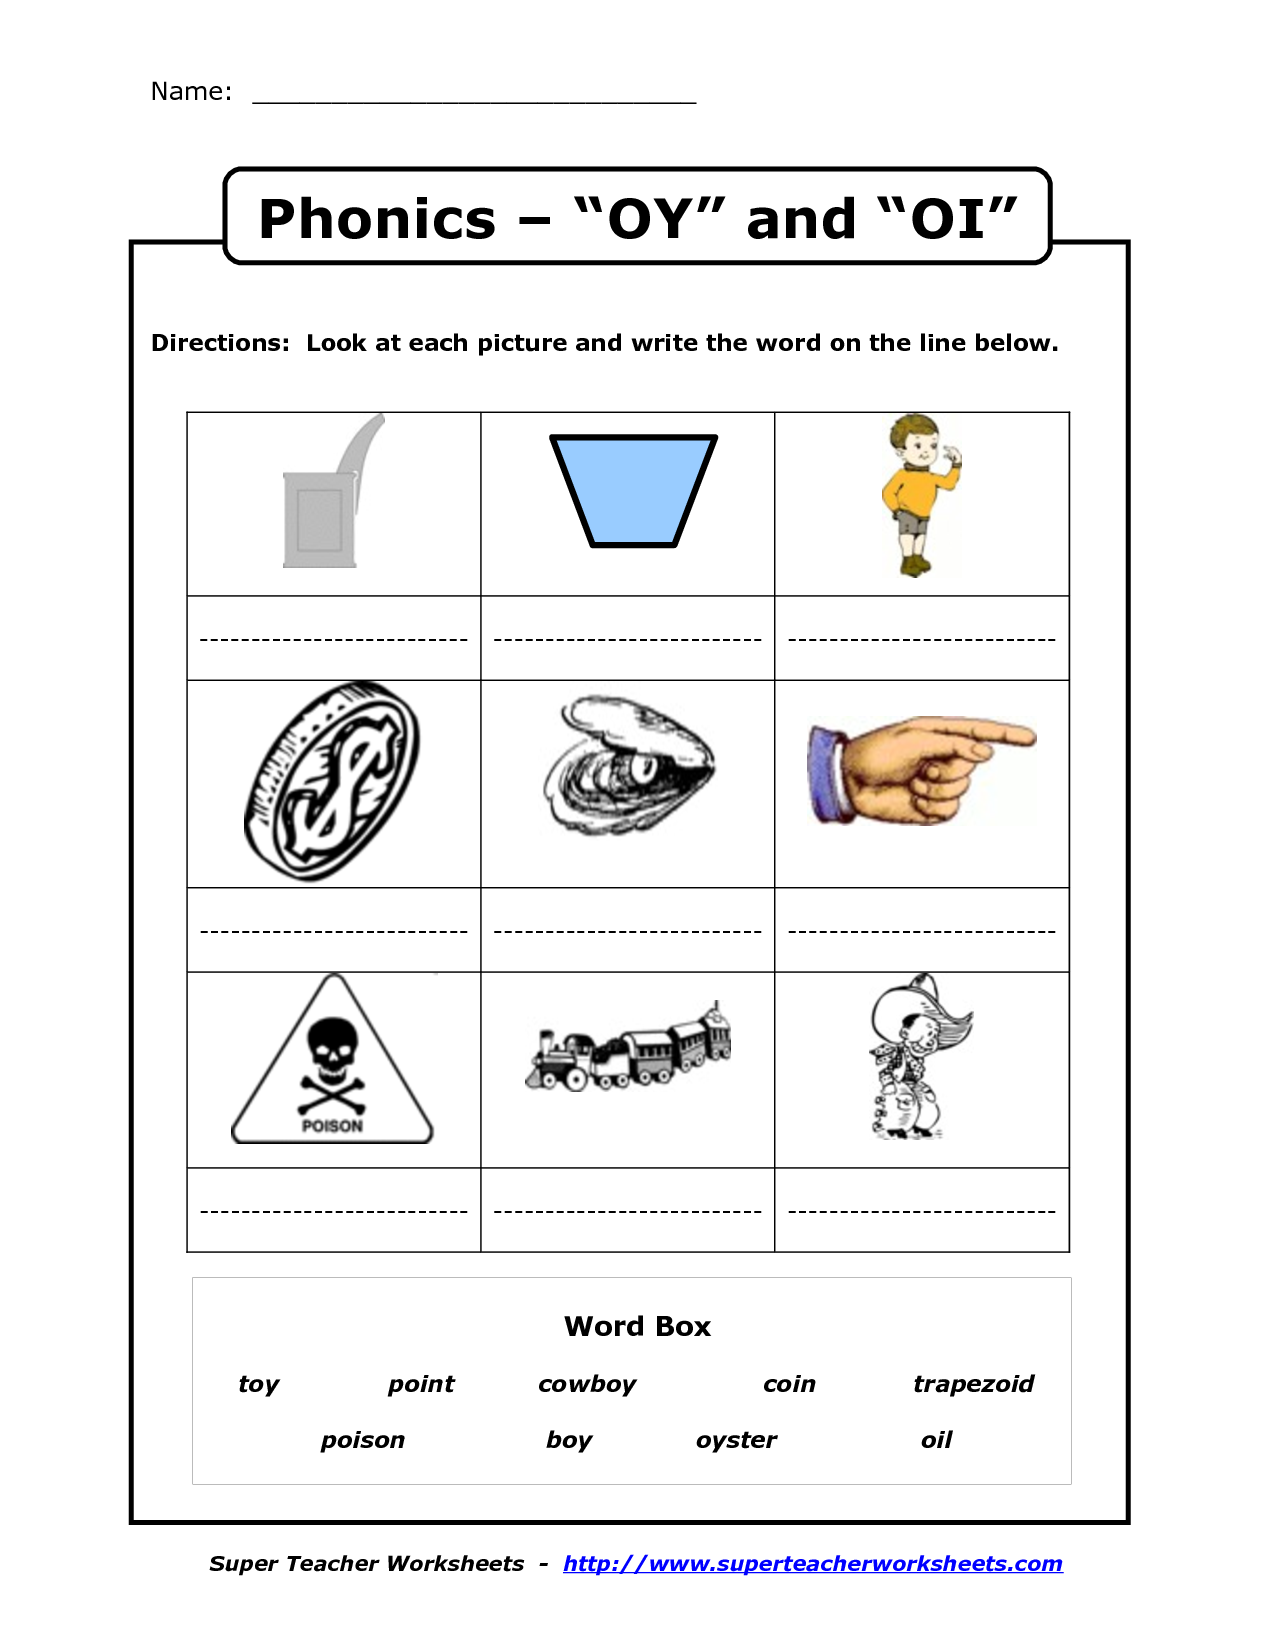 Oy And Oi Phonics Worksheets With Images